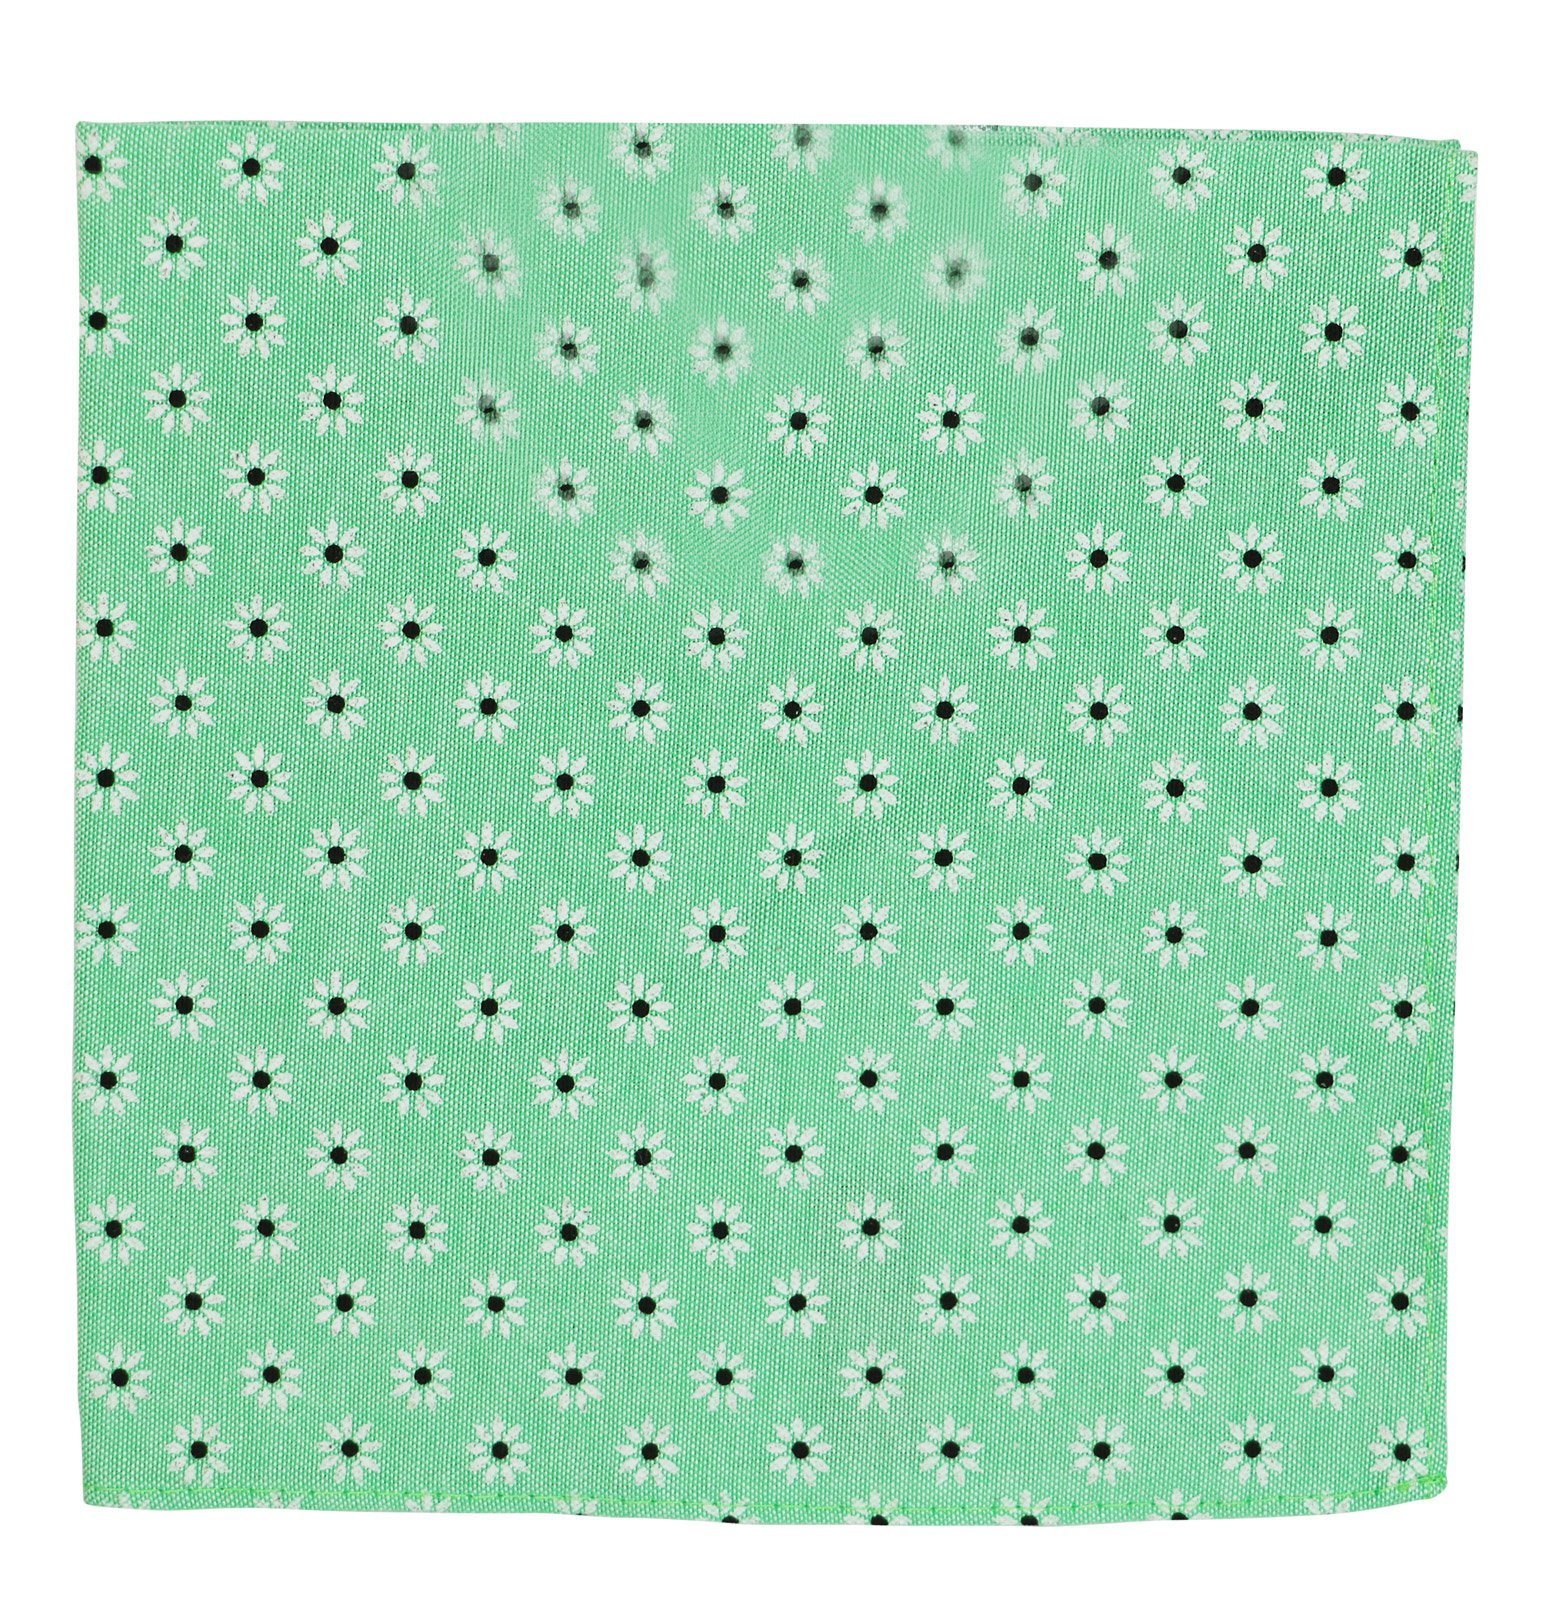 Tommy Hilfiger Oxford Daisy Pocket Square (One Size, Green)